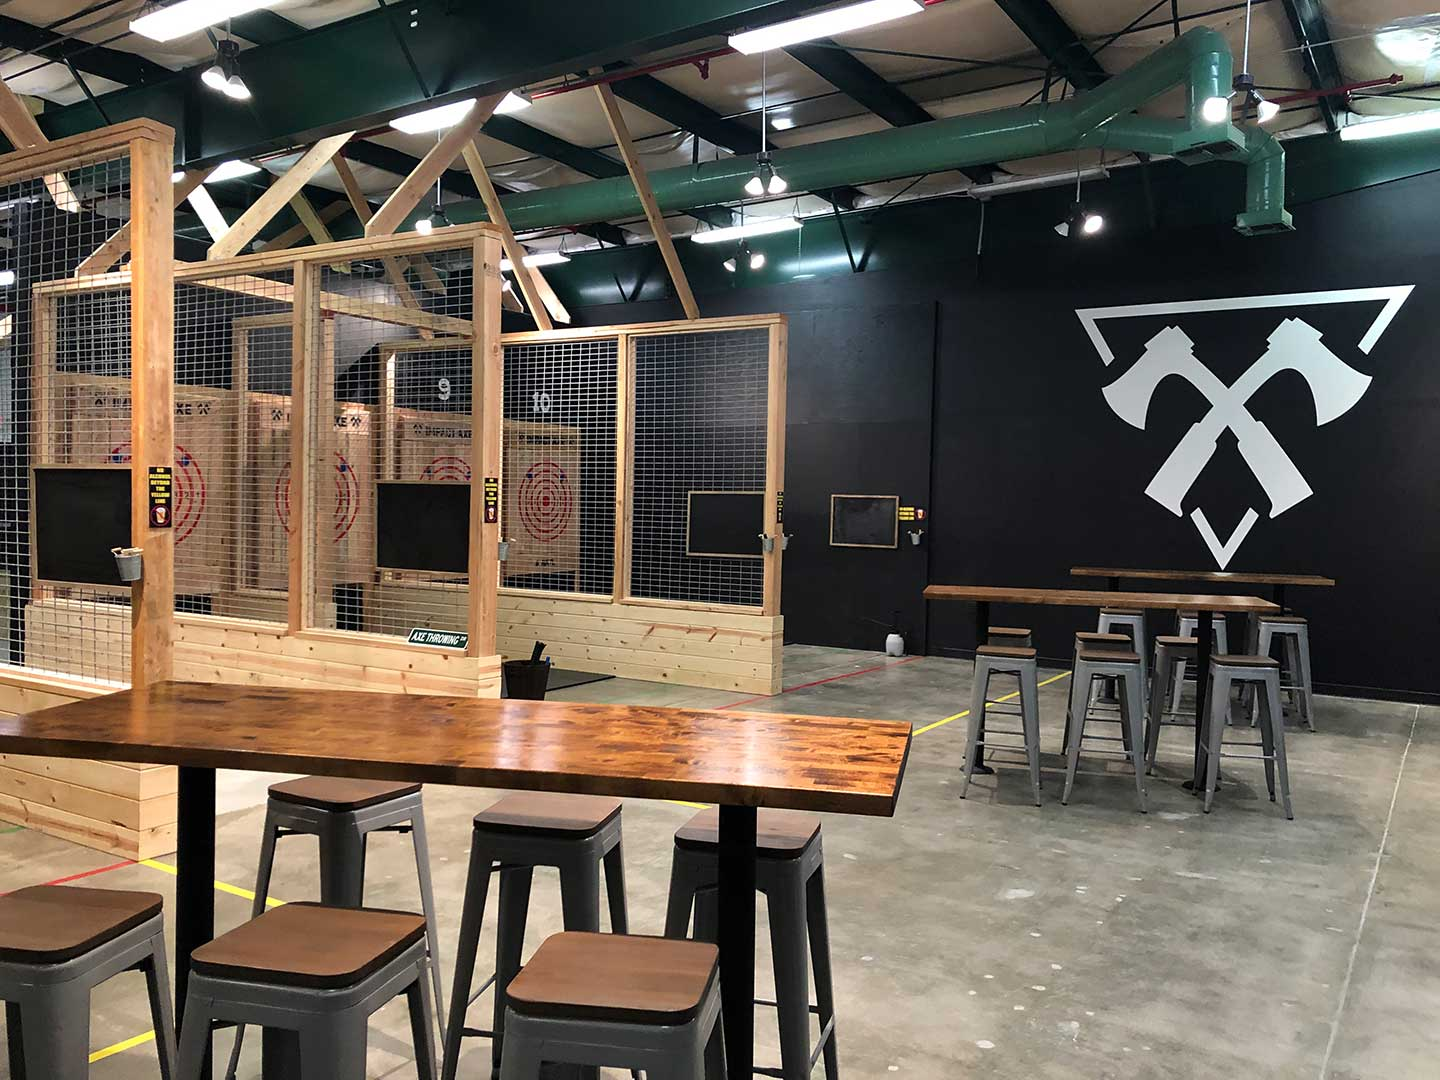 The main axe throwing area.